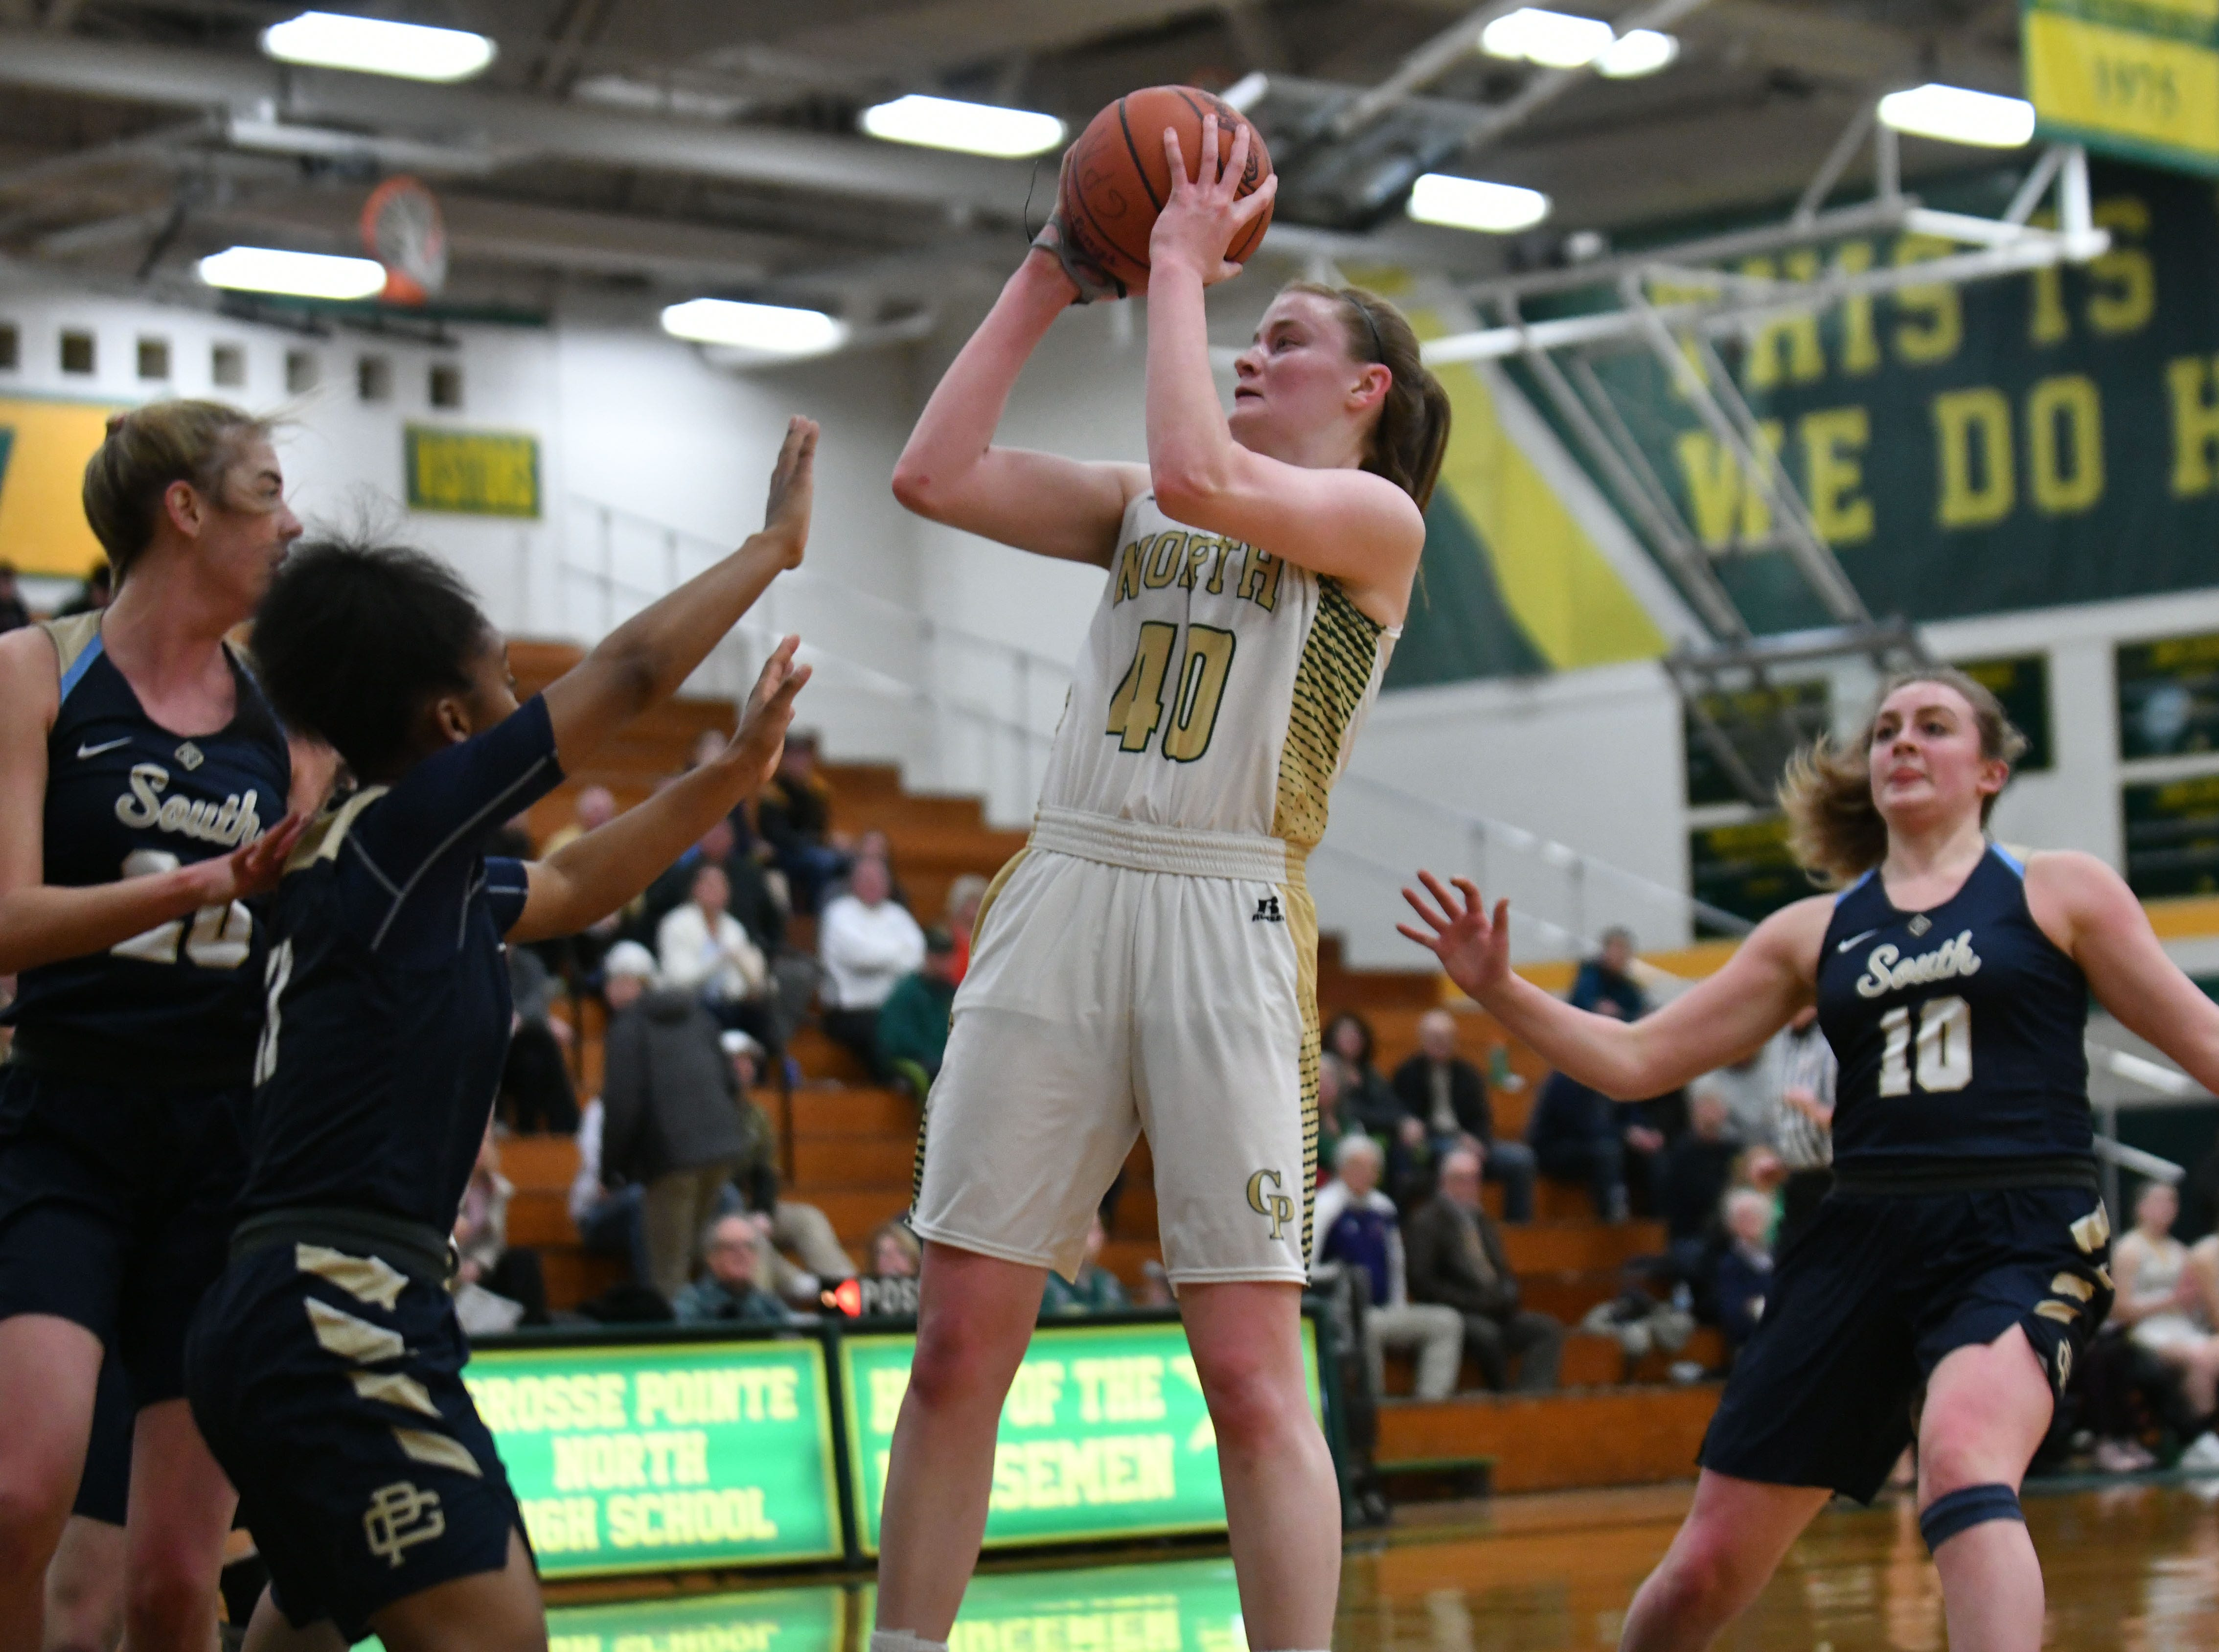 Grosse Pointe North senior Julia Ayrault shoots a jump shot, while surrounded by Grosse Pointe South defenders in the first half.